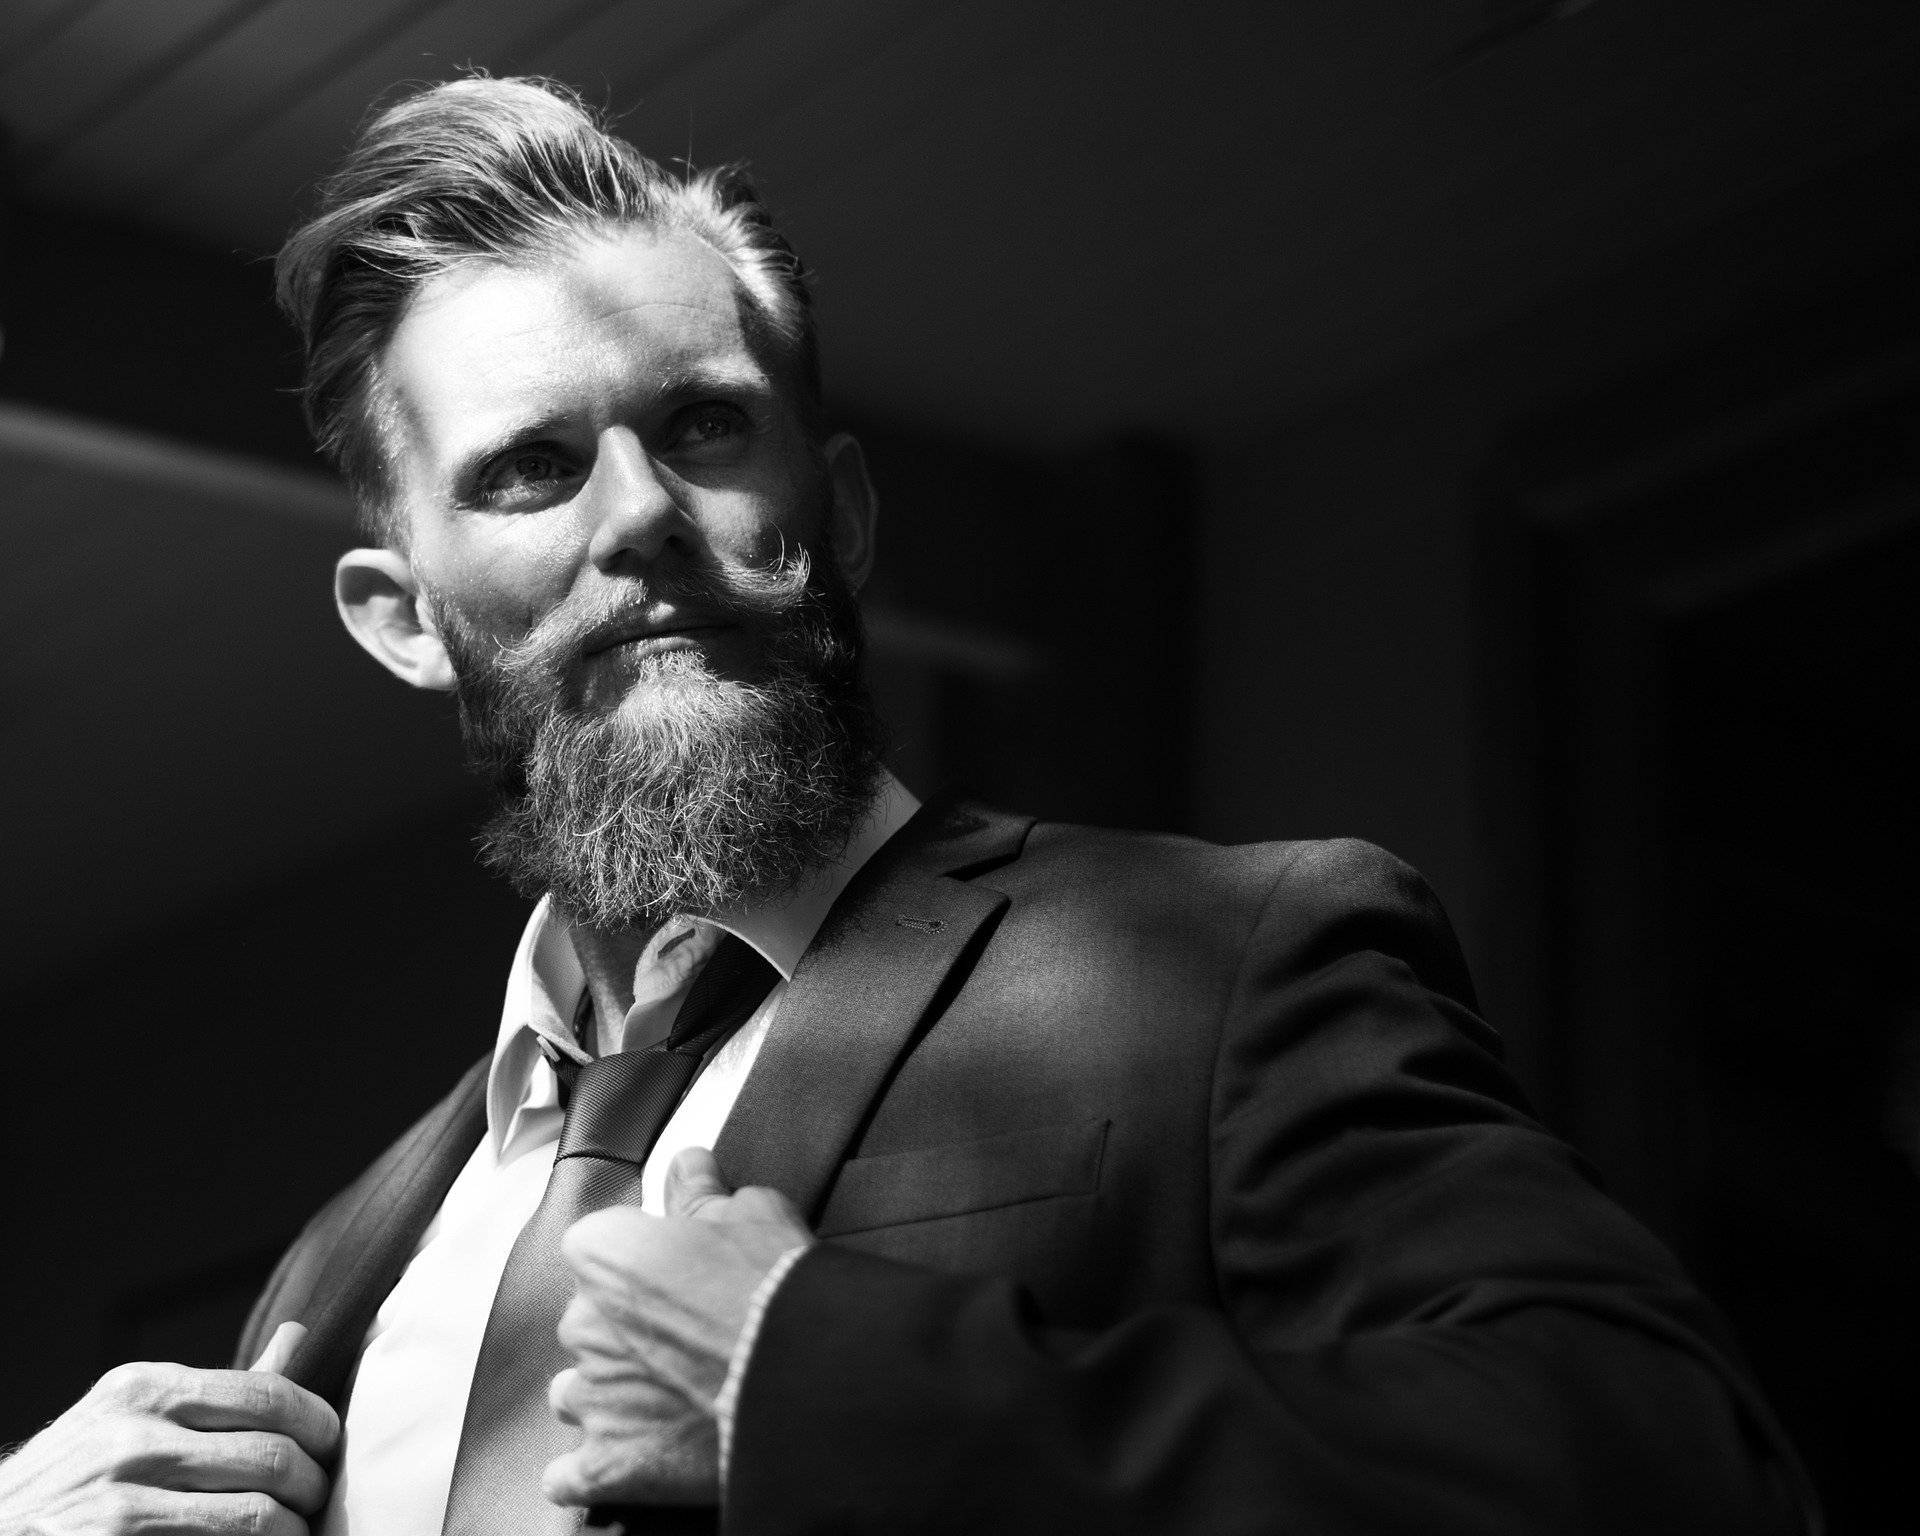 The Truth About Beard Growth And How To Maximize Your Beard Potential